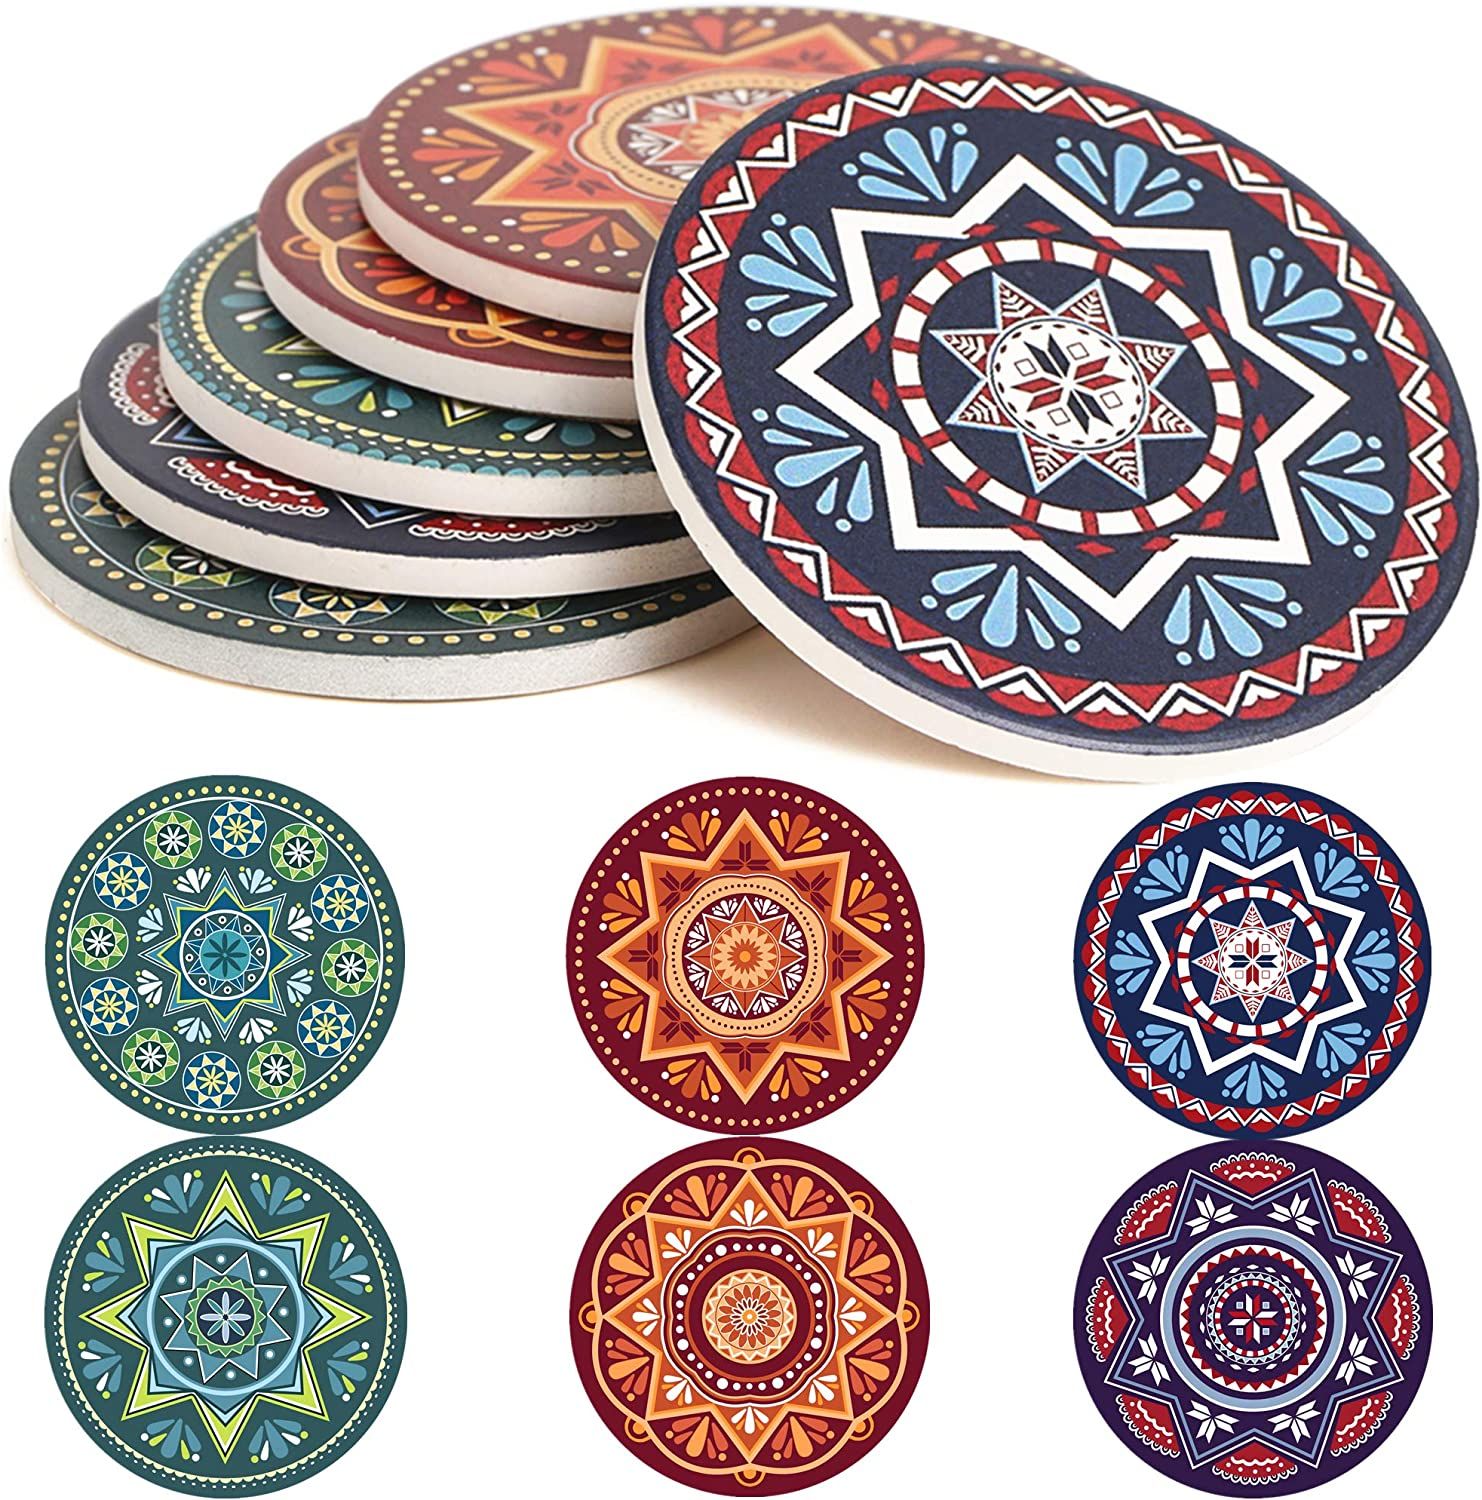 Coasters For Drinks Absorbent - 6 Pretty Mandala Patterns on 4.3 inch Big Ceramic Stone with Cork Back, Thirsty Mats Keep Furniture Free of Damage By Water Stain, ENKORE Coaster Holder Sold Separately